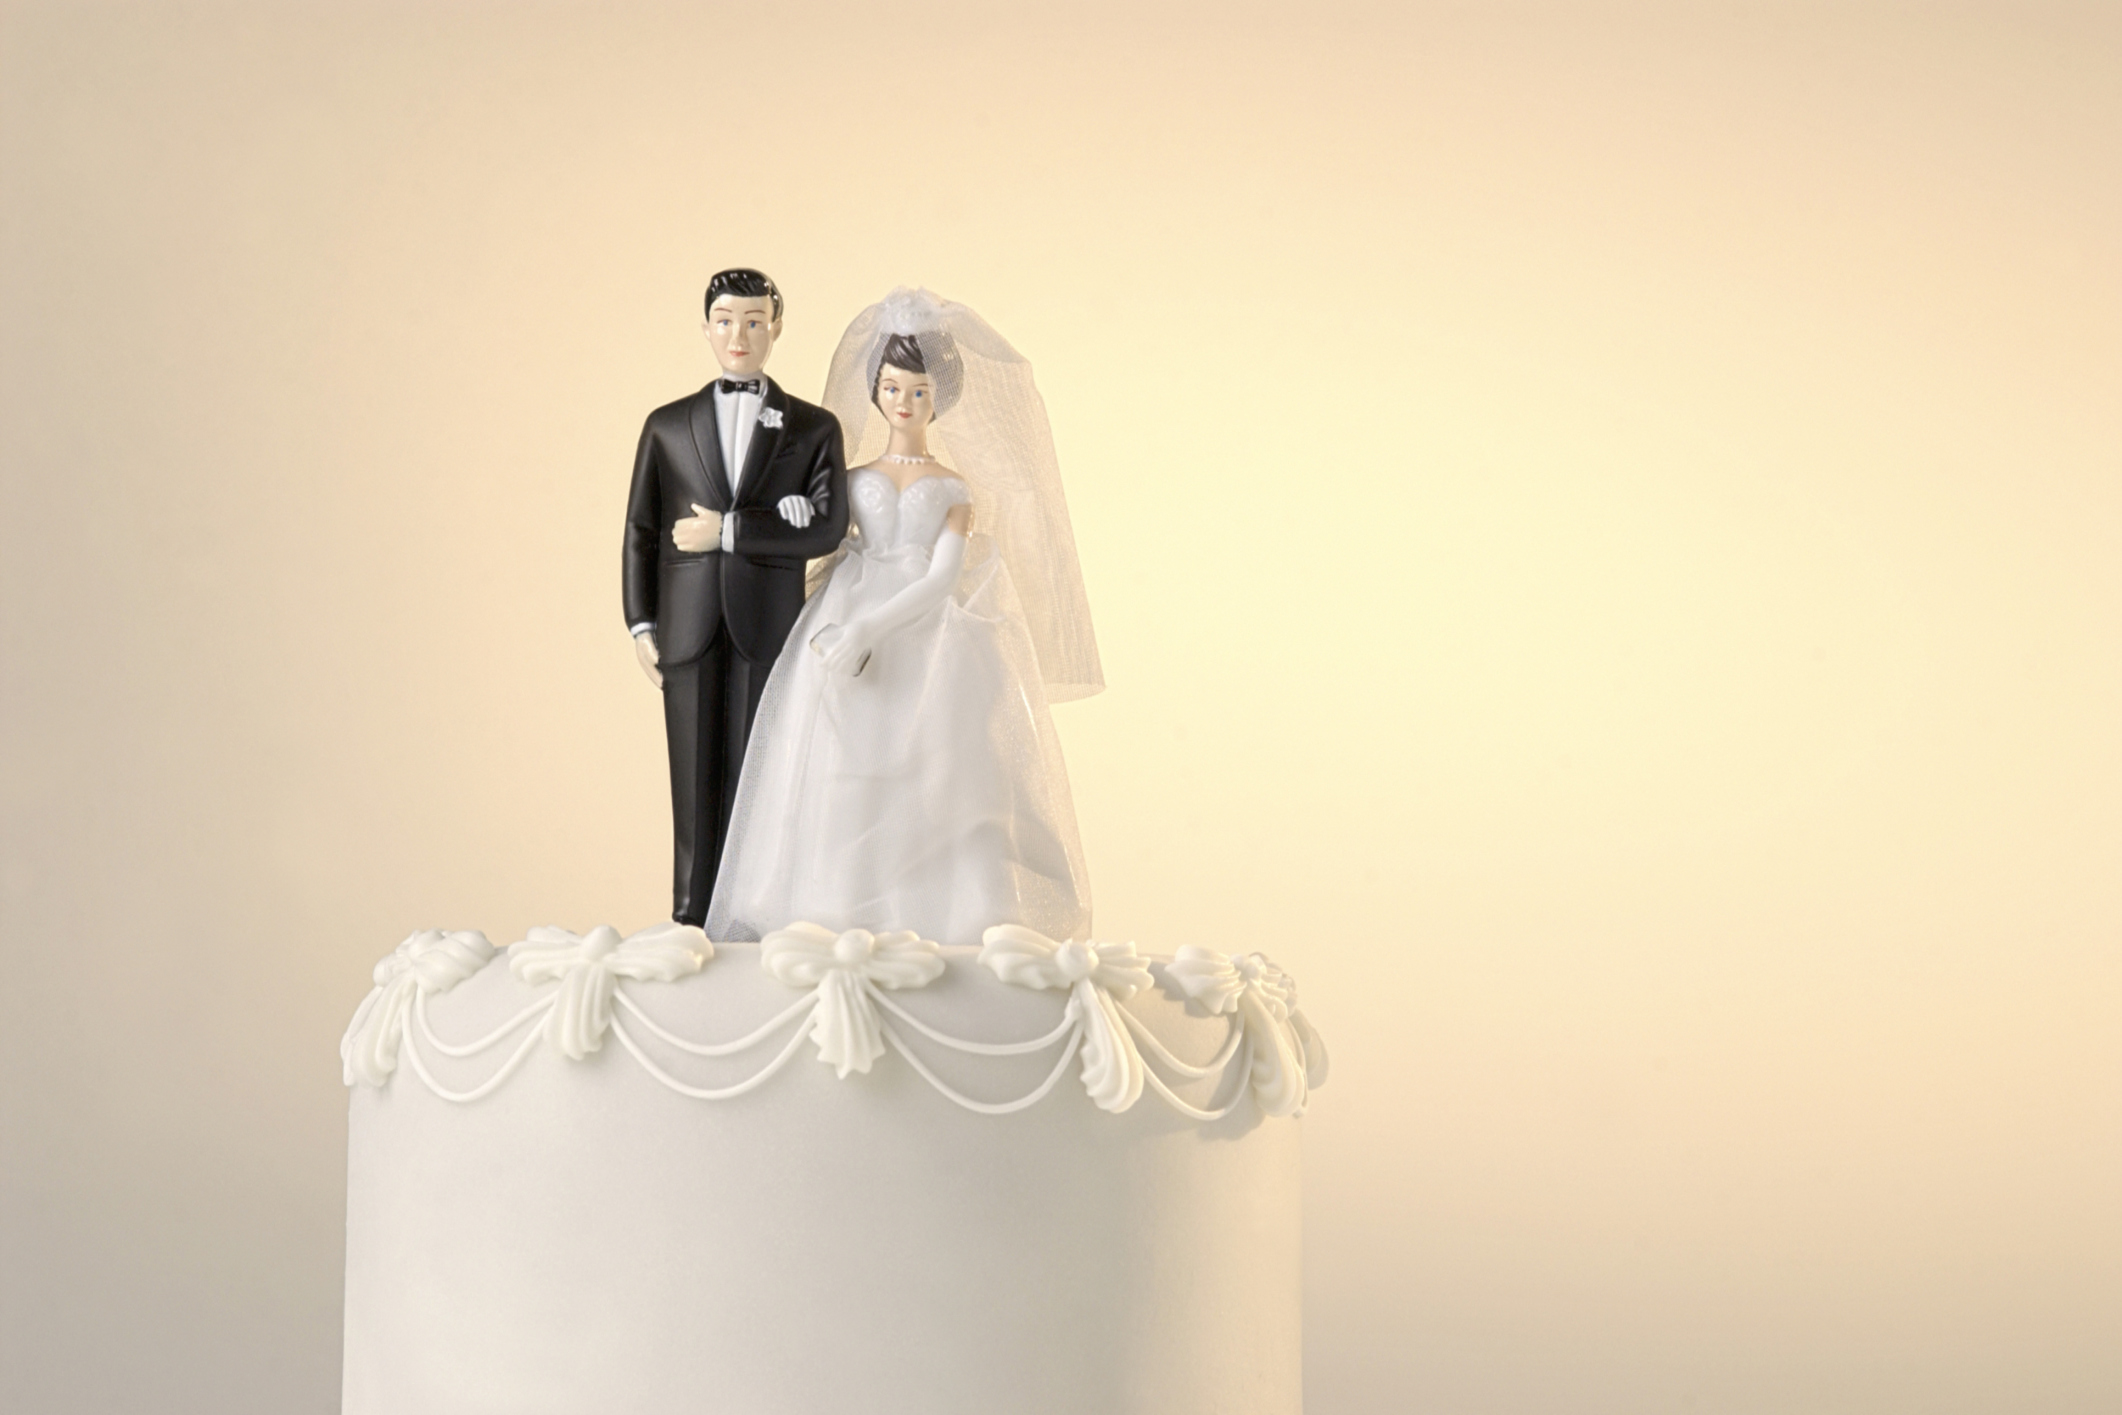 traditional wedding cake toppers bride and groom wedding cake toppers articles easy weddings 21210